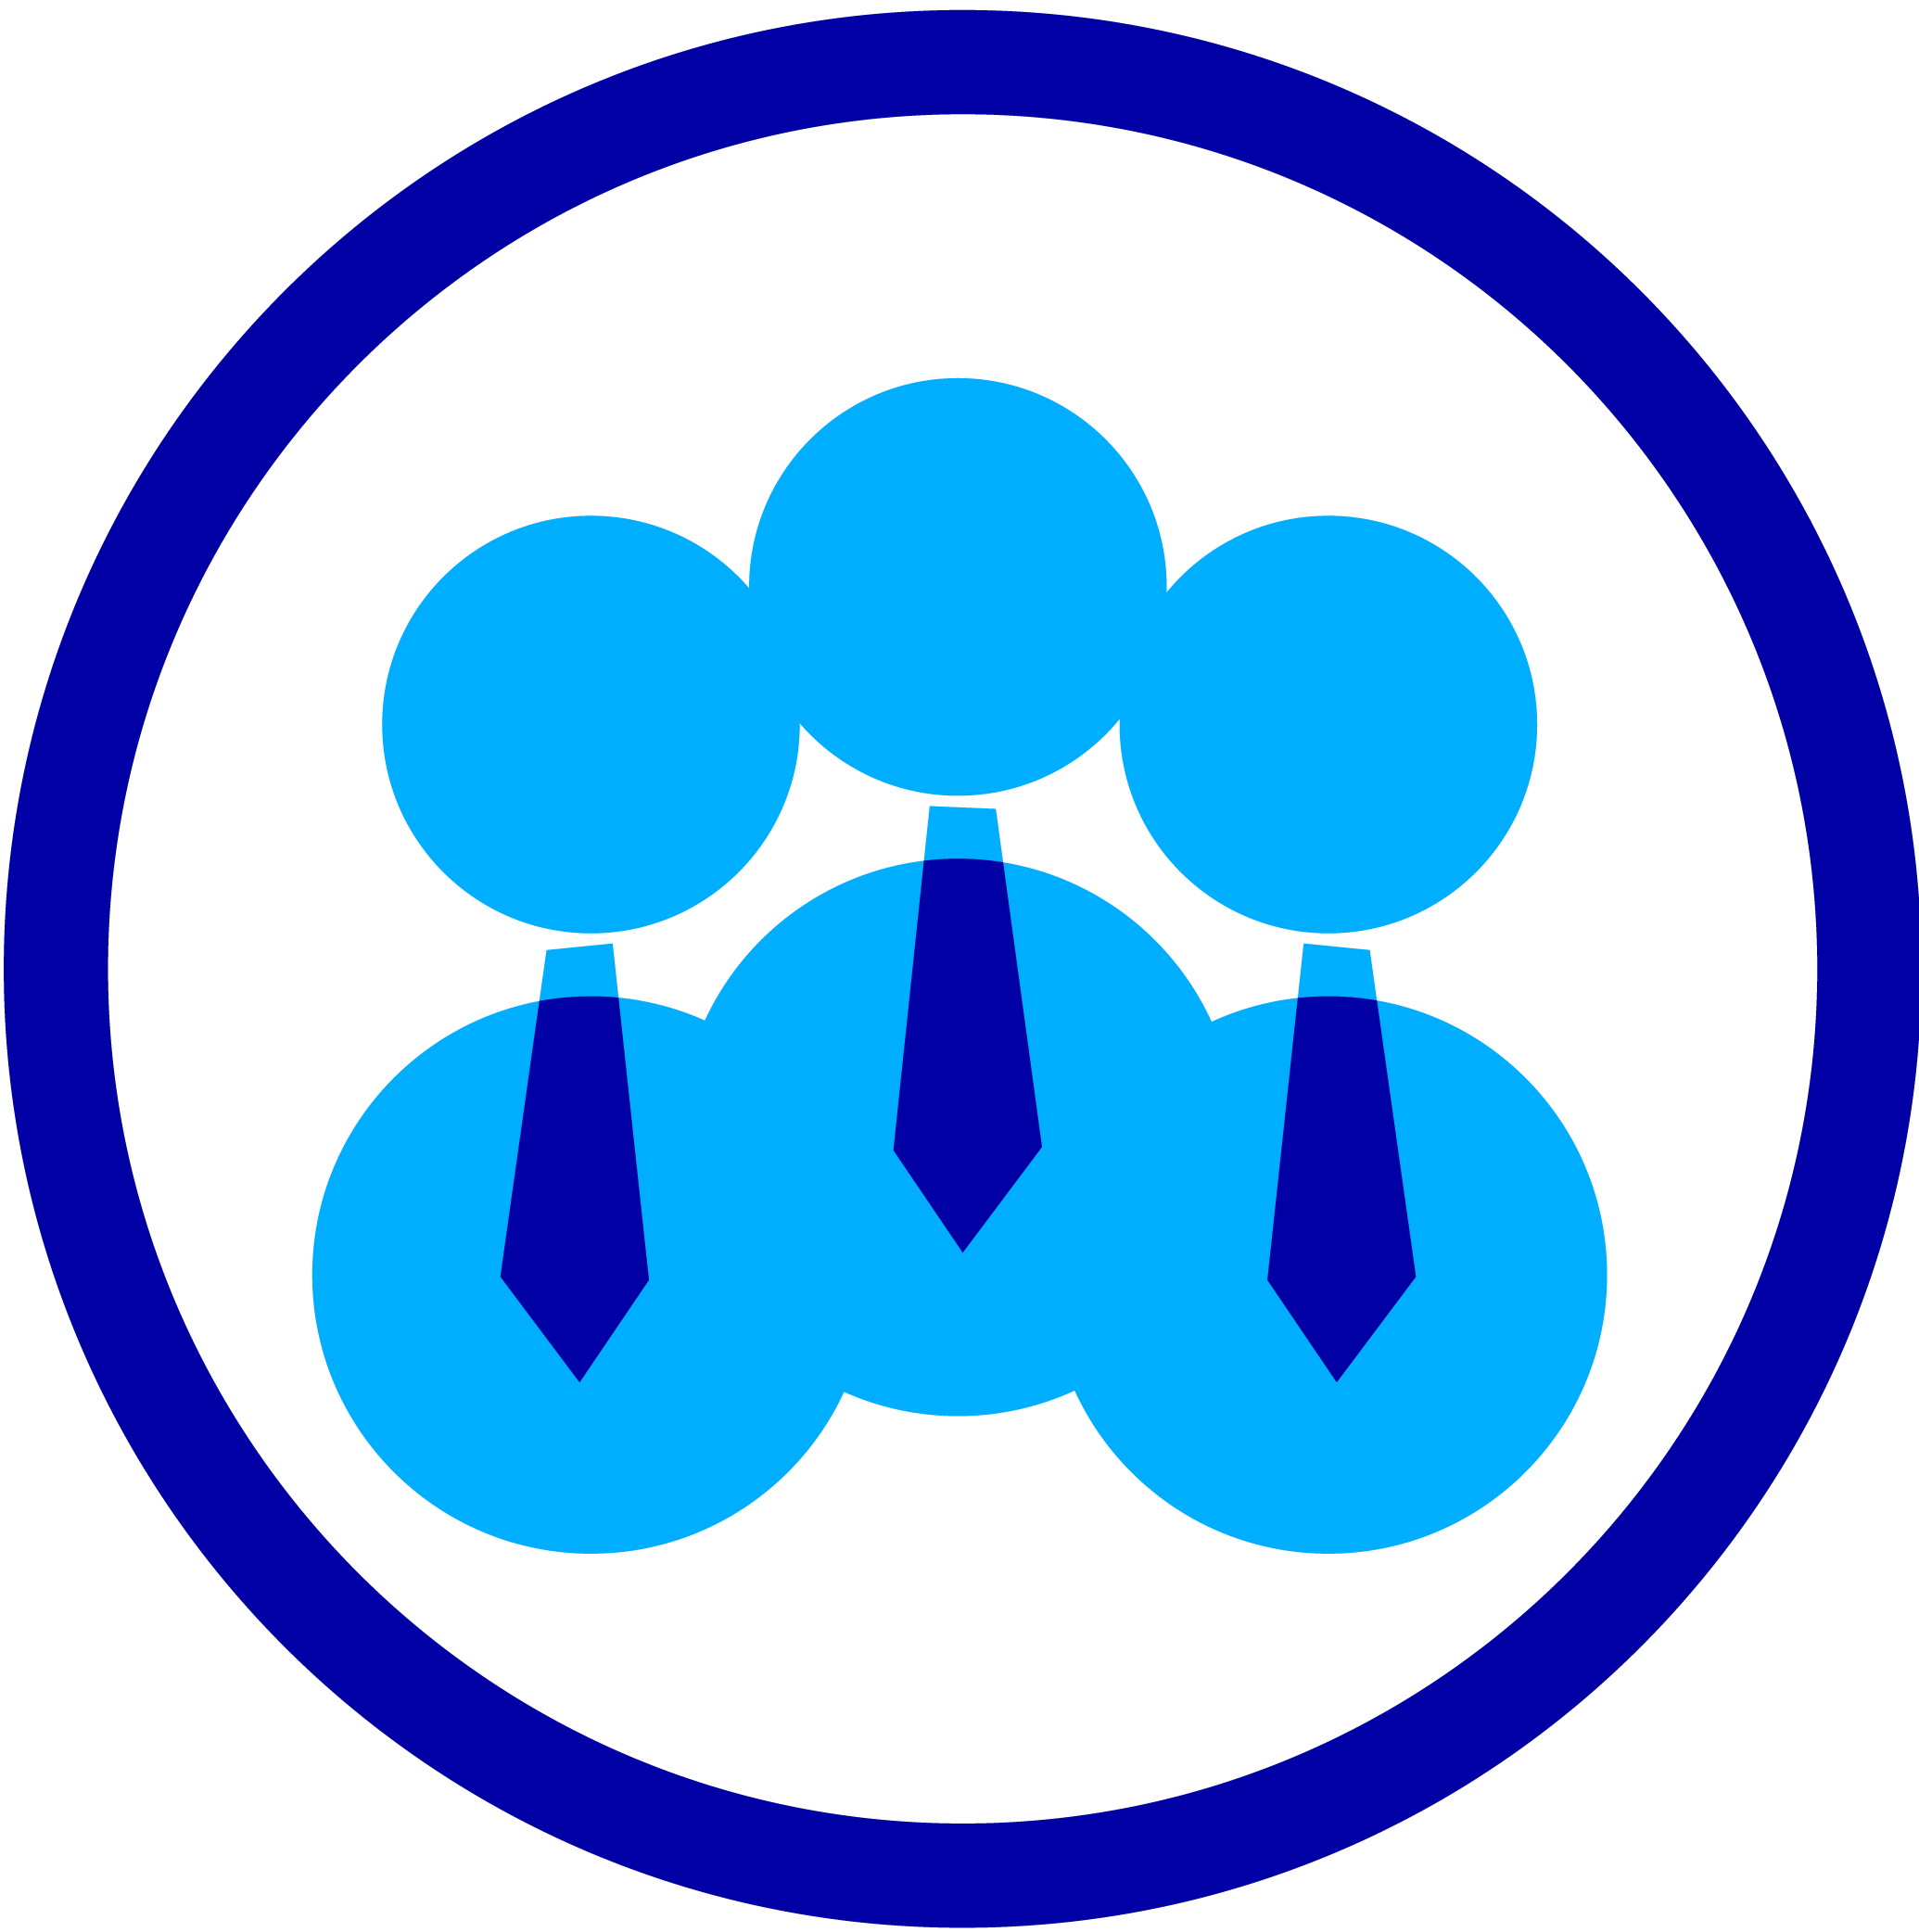 https://us.fi-group.com/wp-content/uploads/sites/16/2021/02/blue-icons-set_1-59.png